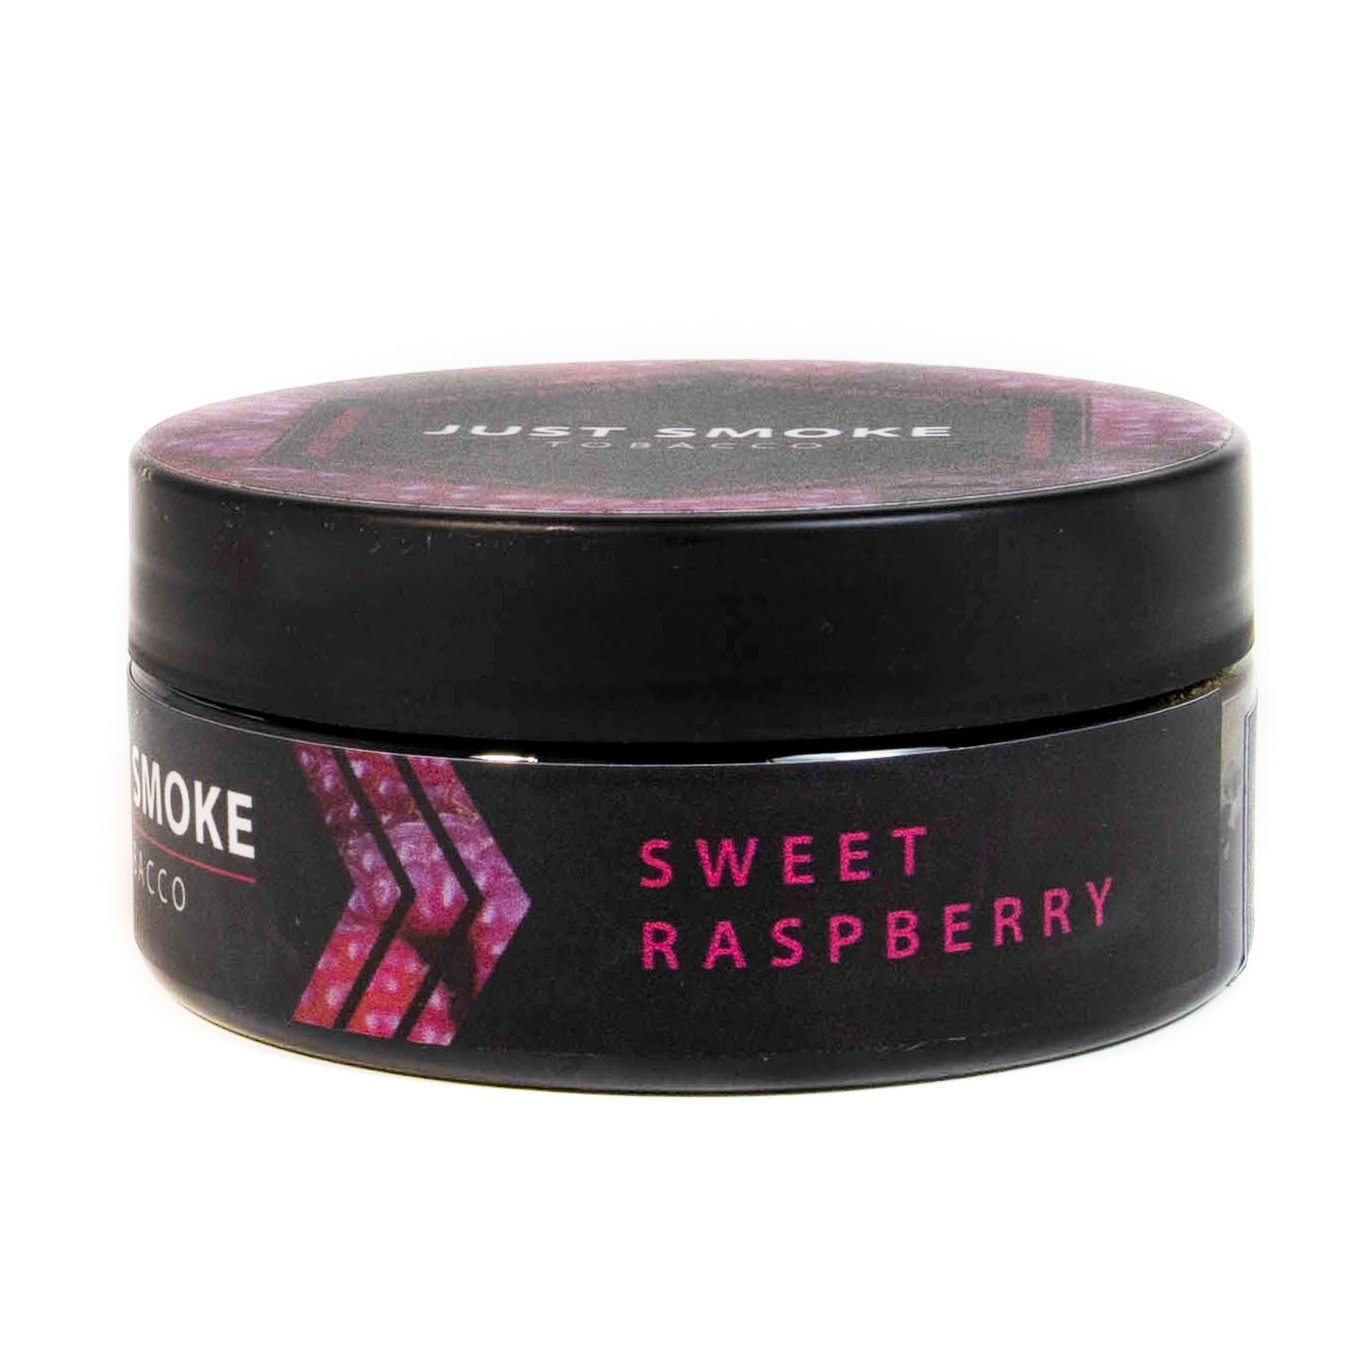 Фото Just Smoke - Sweet Raspberry 100 г